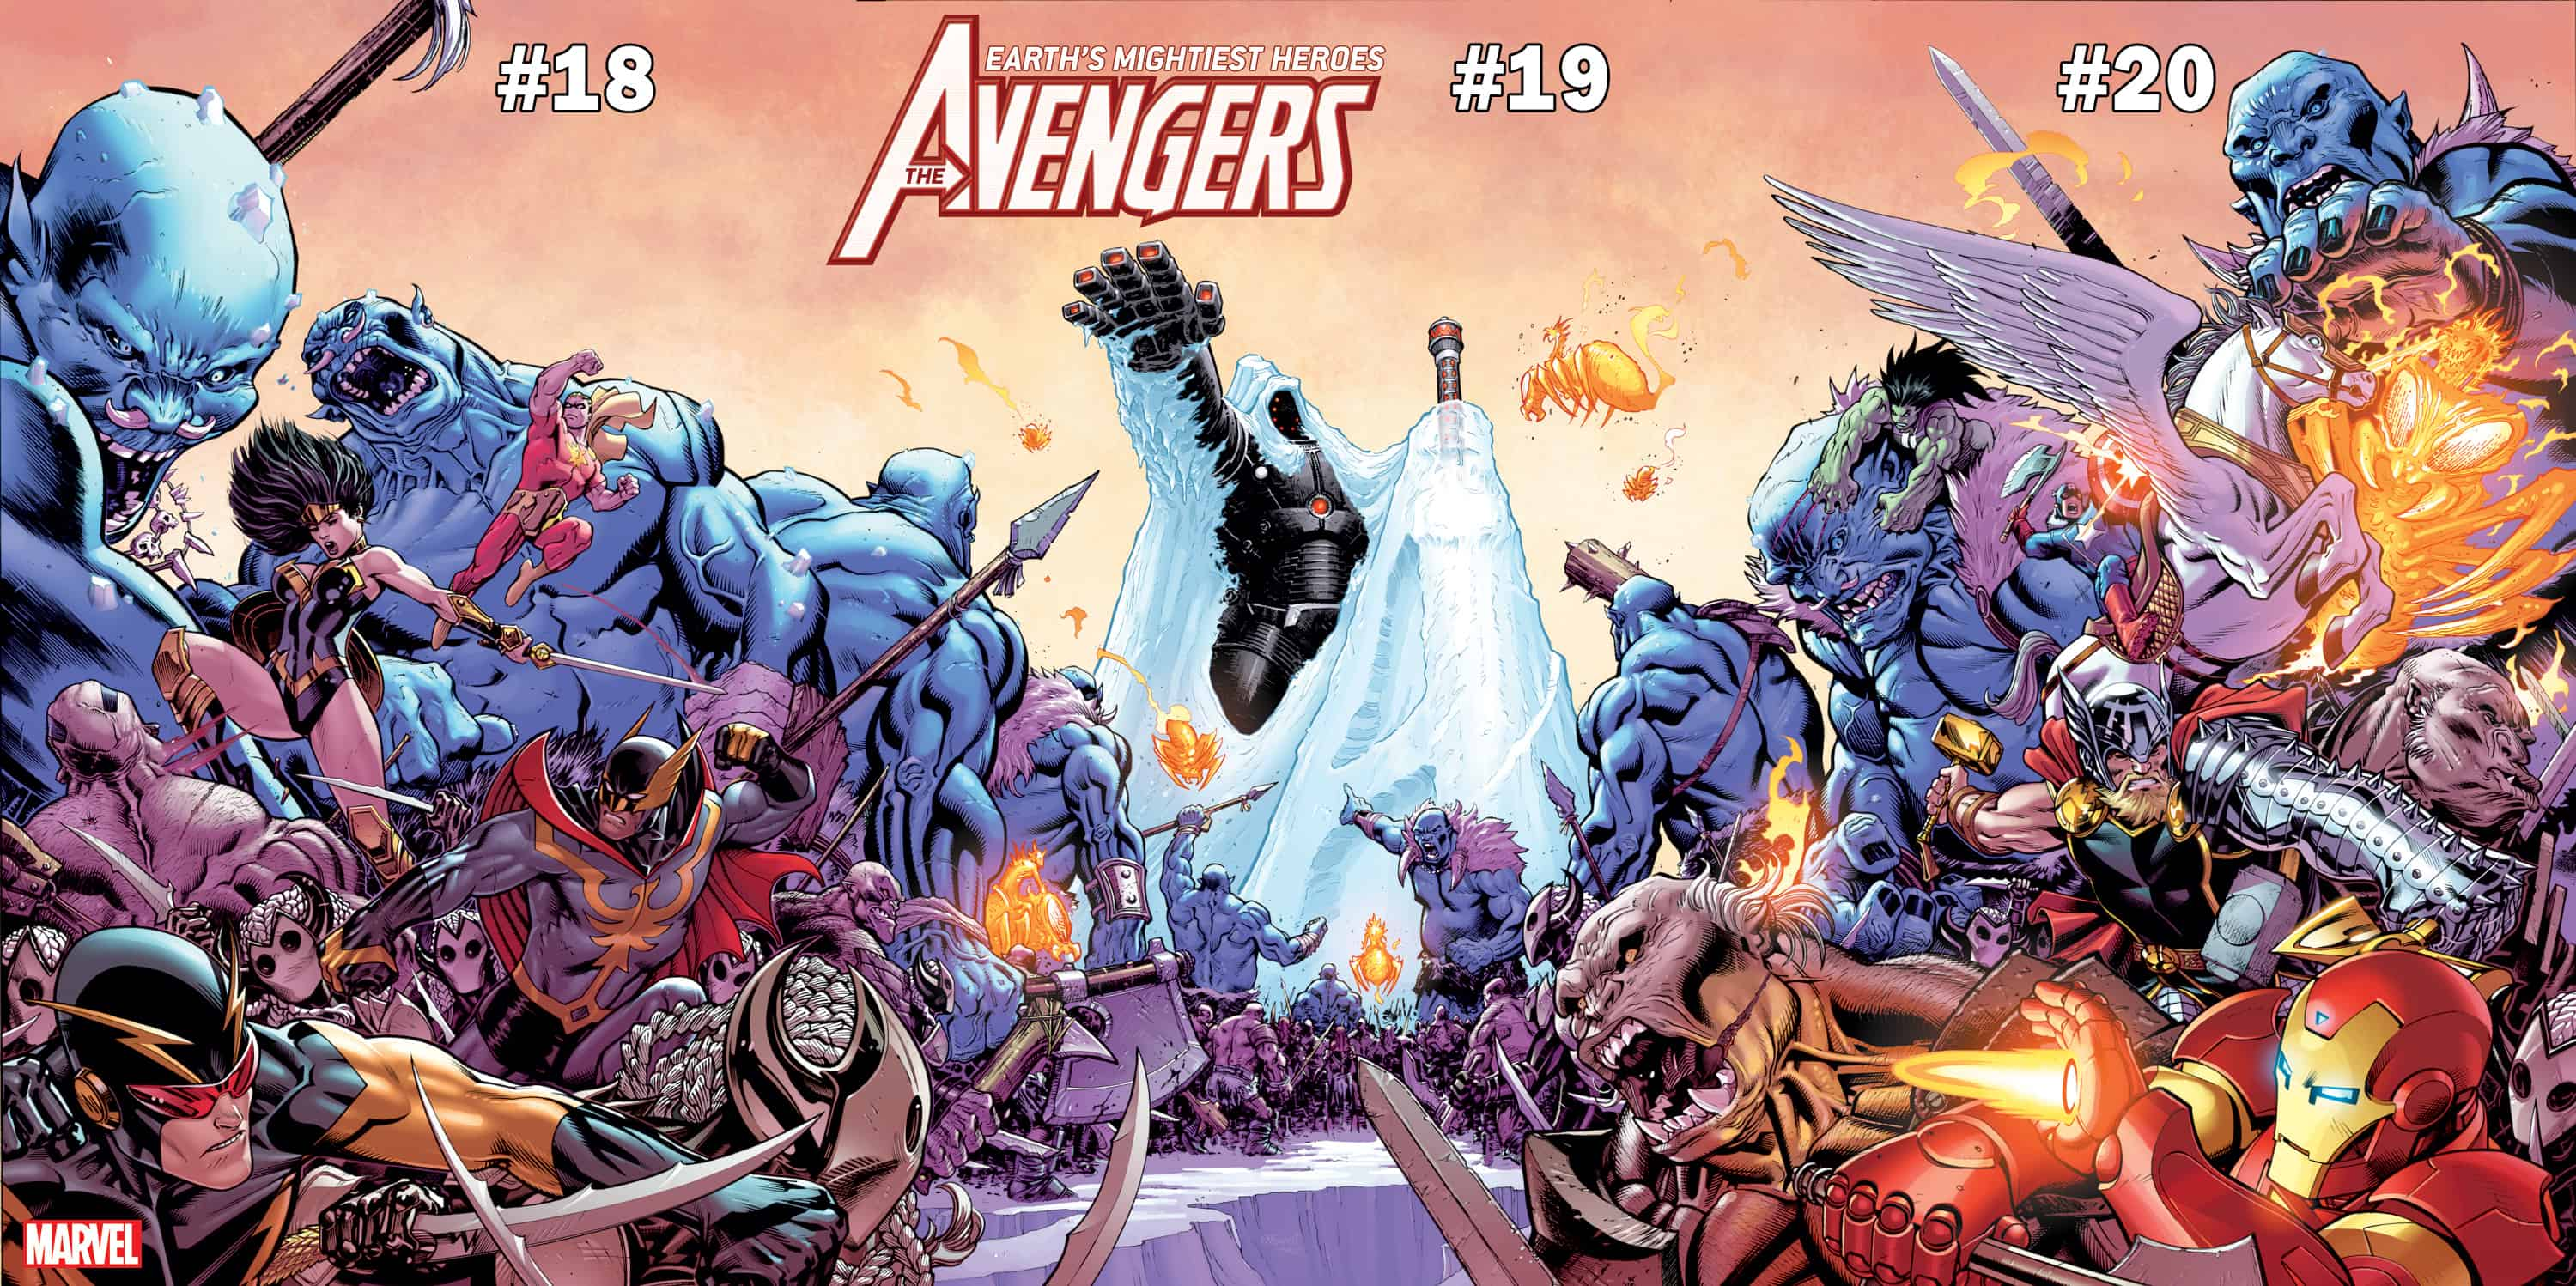 FIRST WATCH: The Avengers Join the Battle in War of The Realms